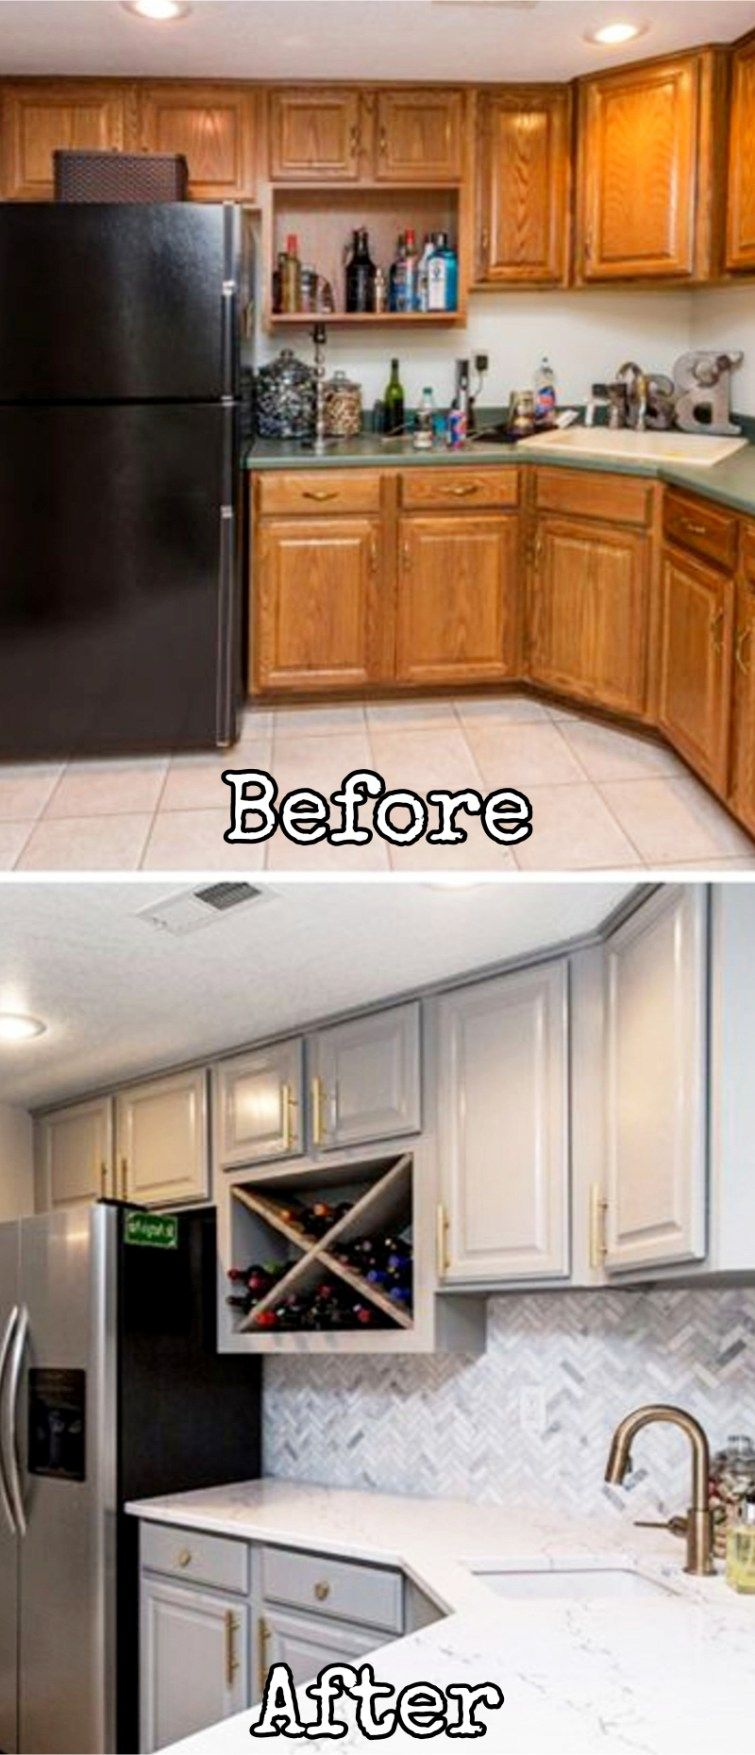 Small Kitchen Makeovers  Before And After Pictures Of Small Amusing Remodel Small Kitchen Ideas Design Decoration